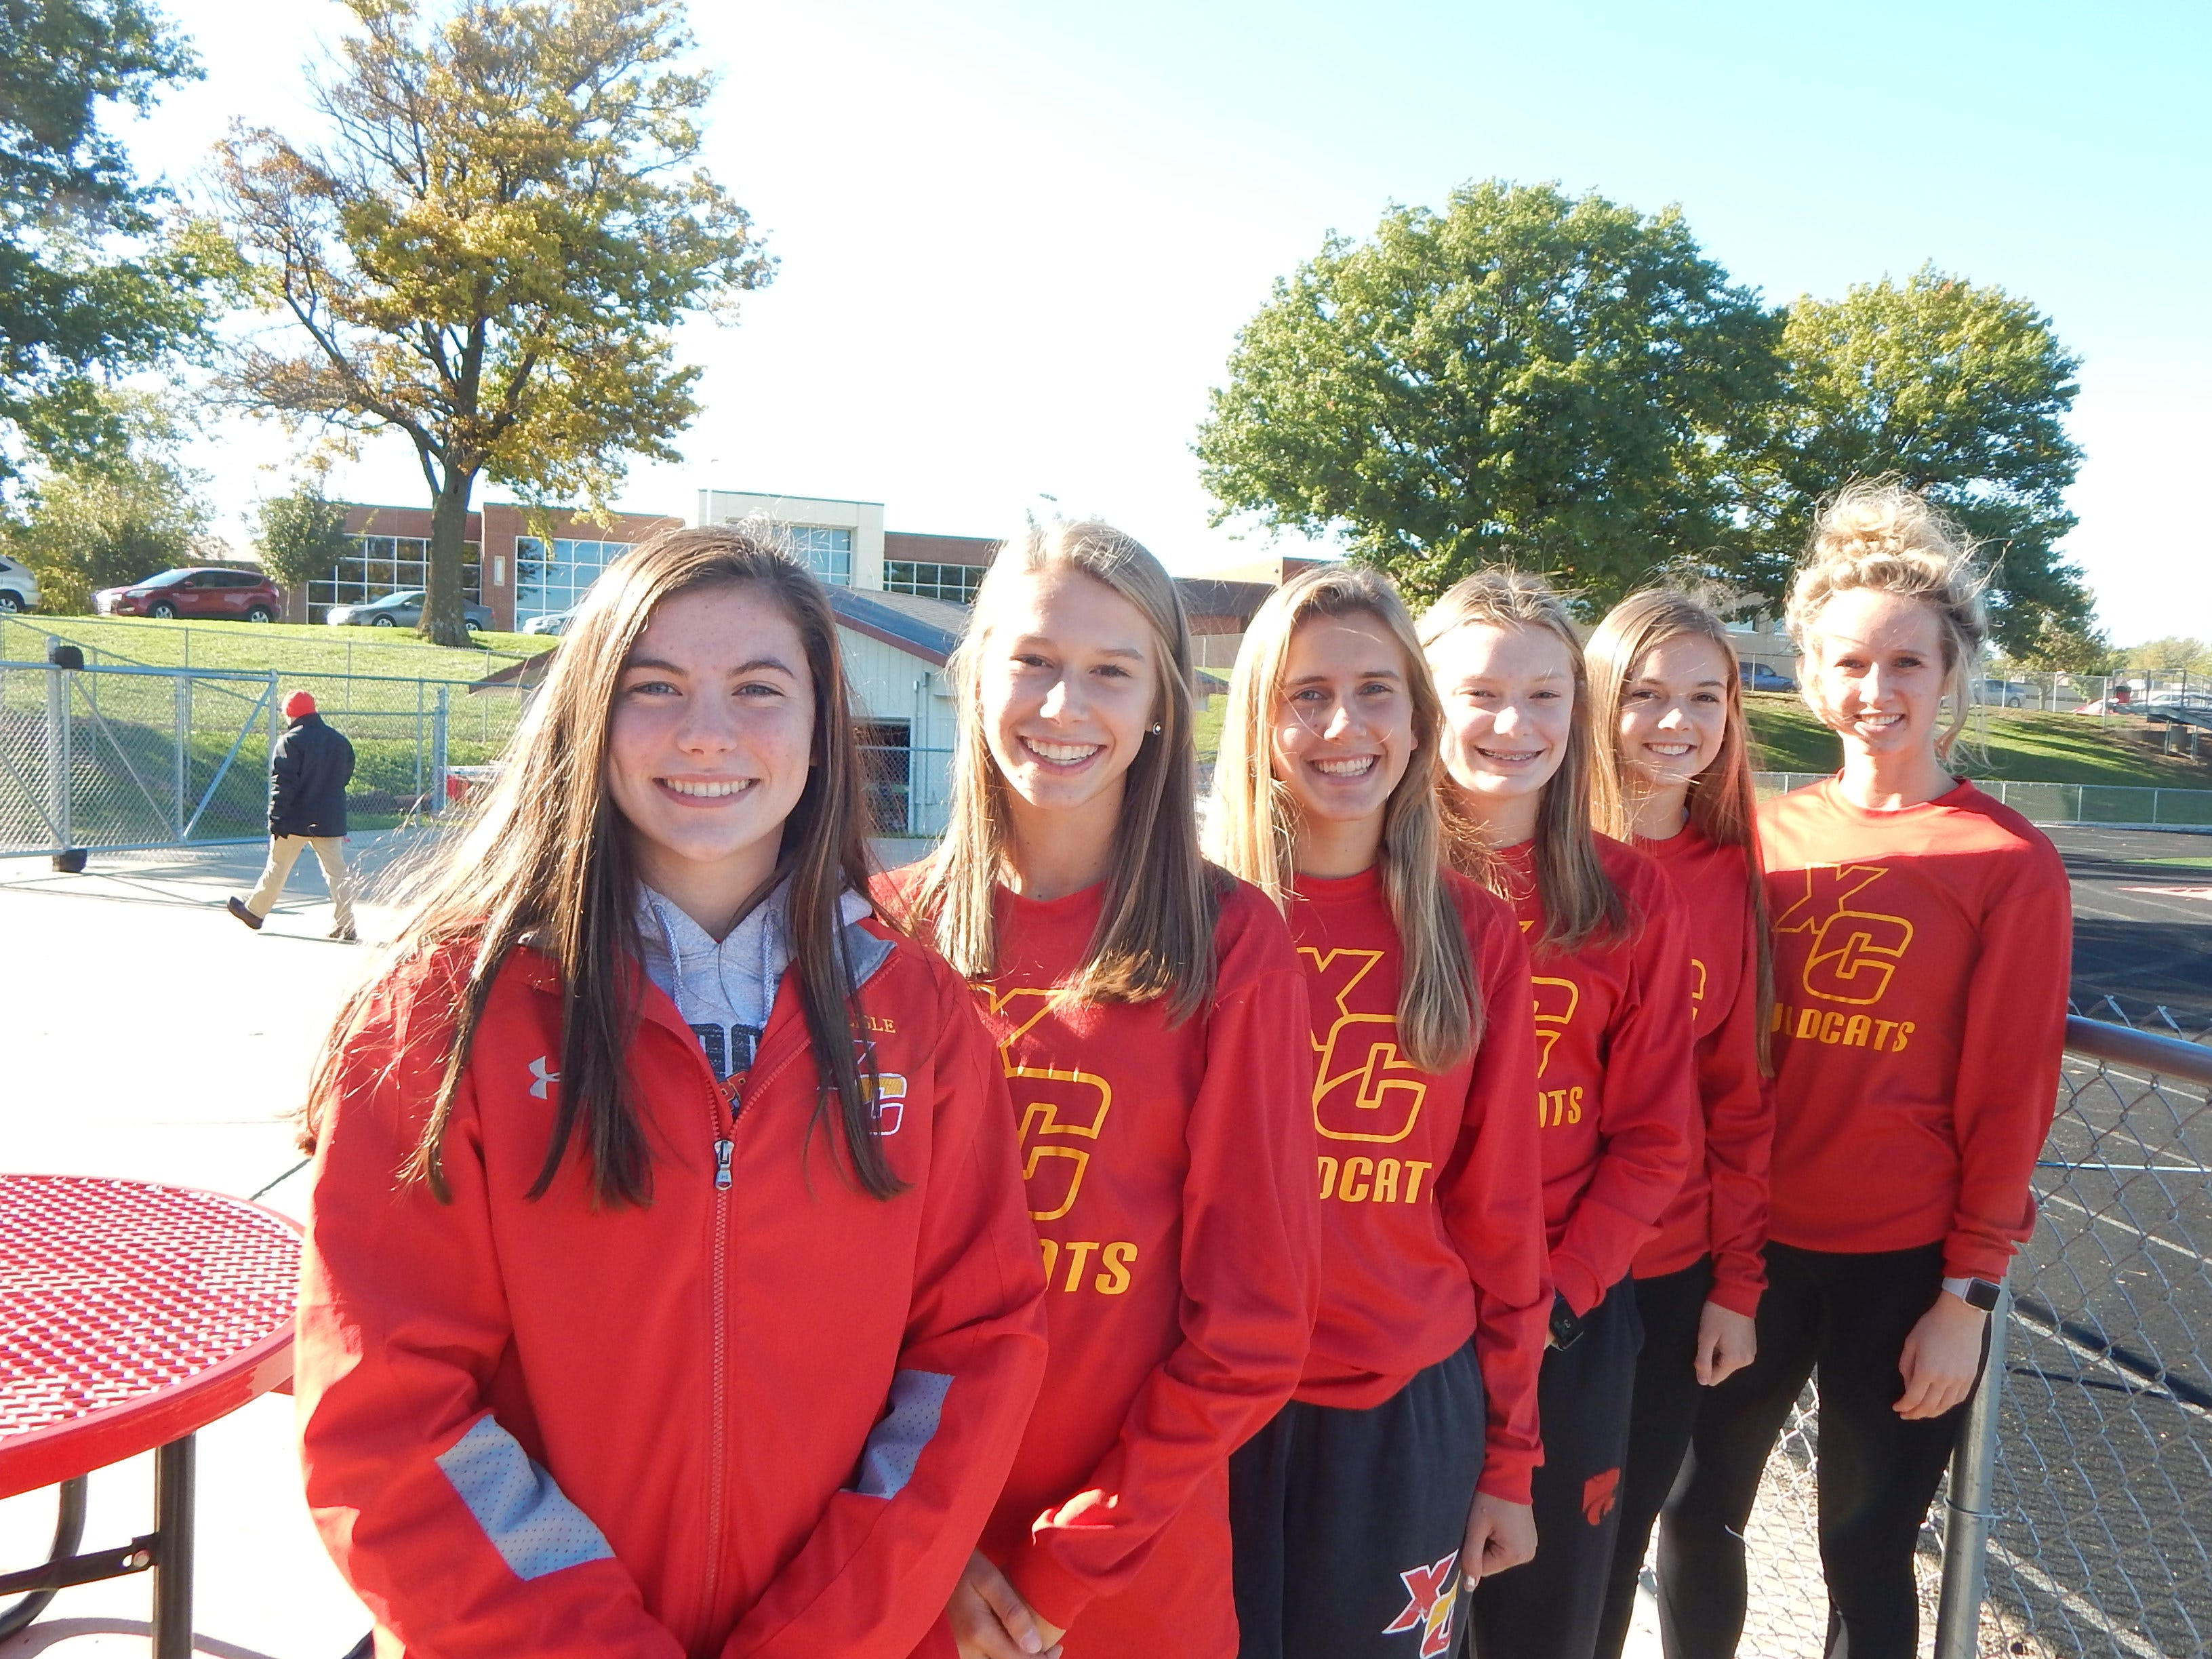 Carlisle's runners hope to end the season at state. From left: Abby Noonan, Ainsley Erzen, Megan Sievers, Mady Taylor, Ella Andersen and Jocelyn Haack.